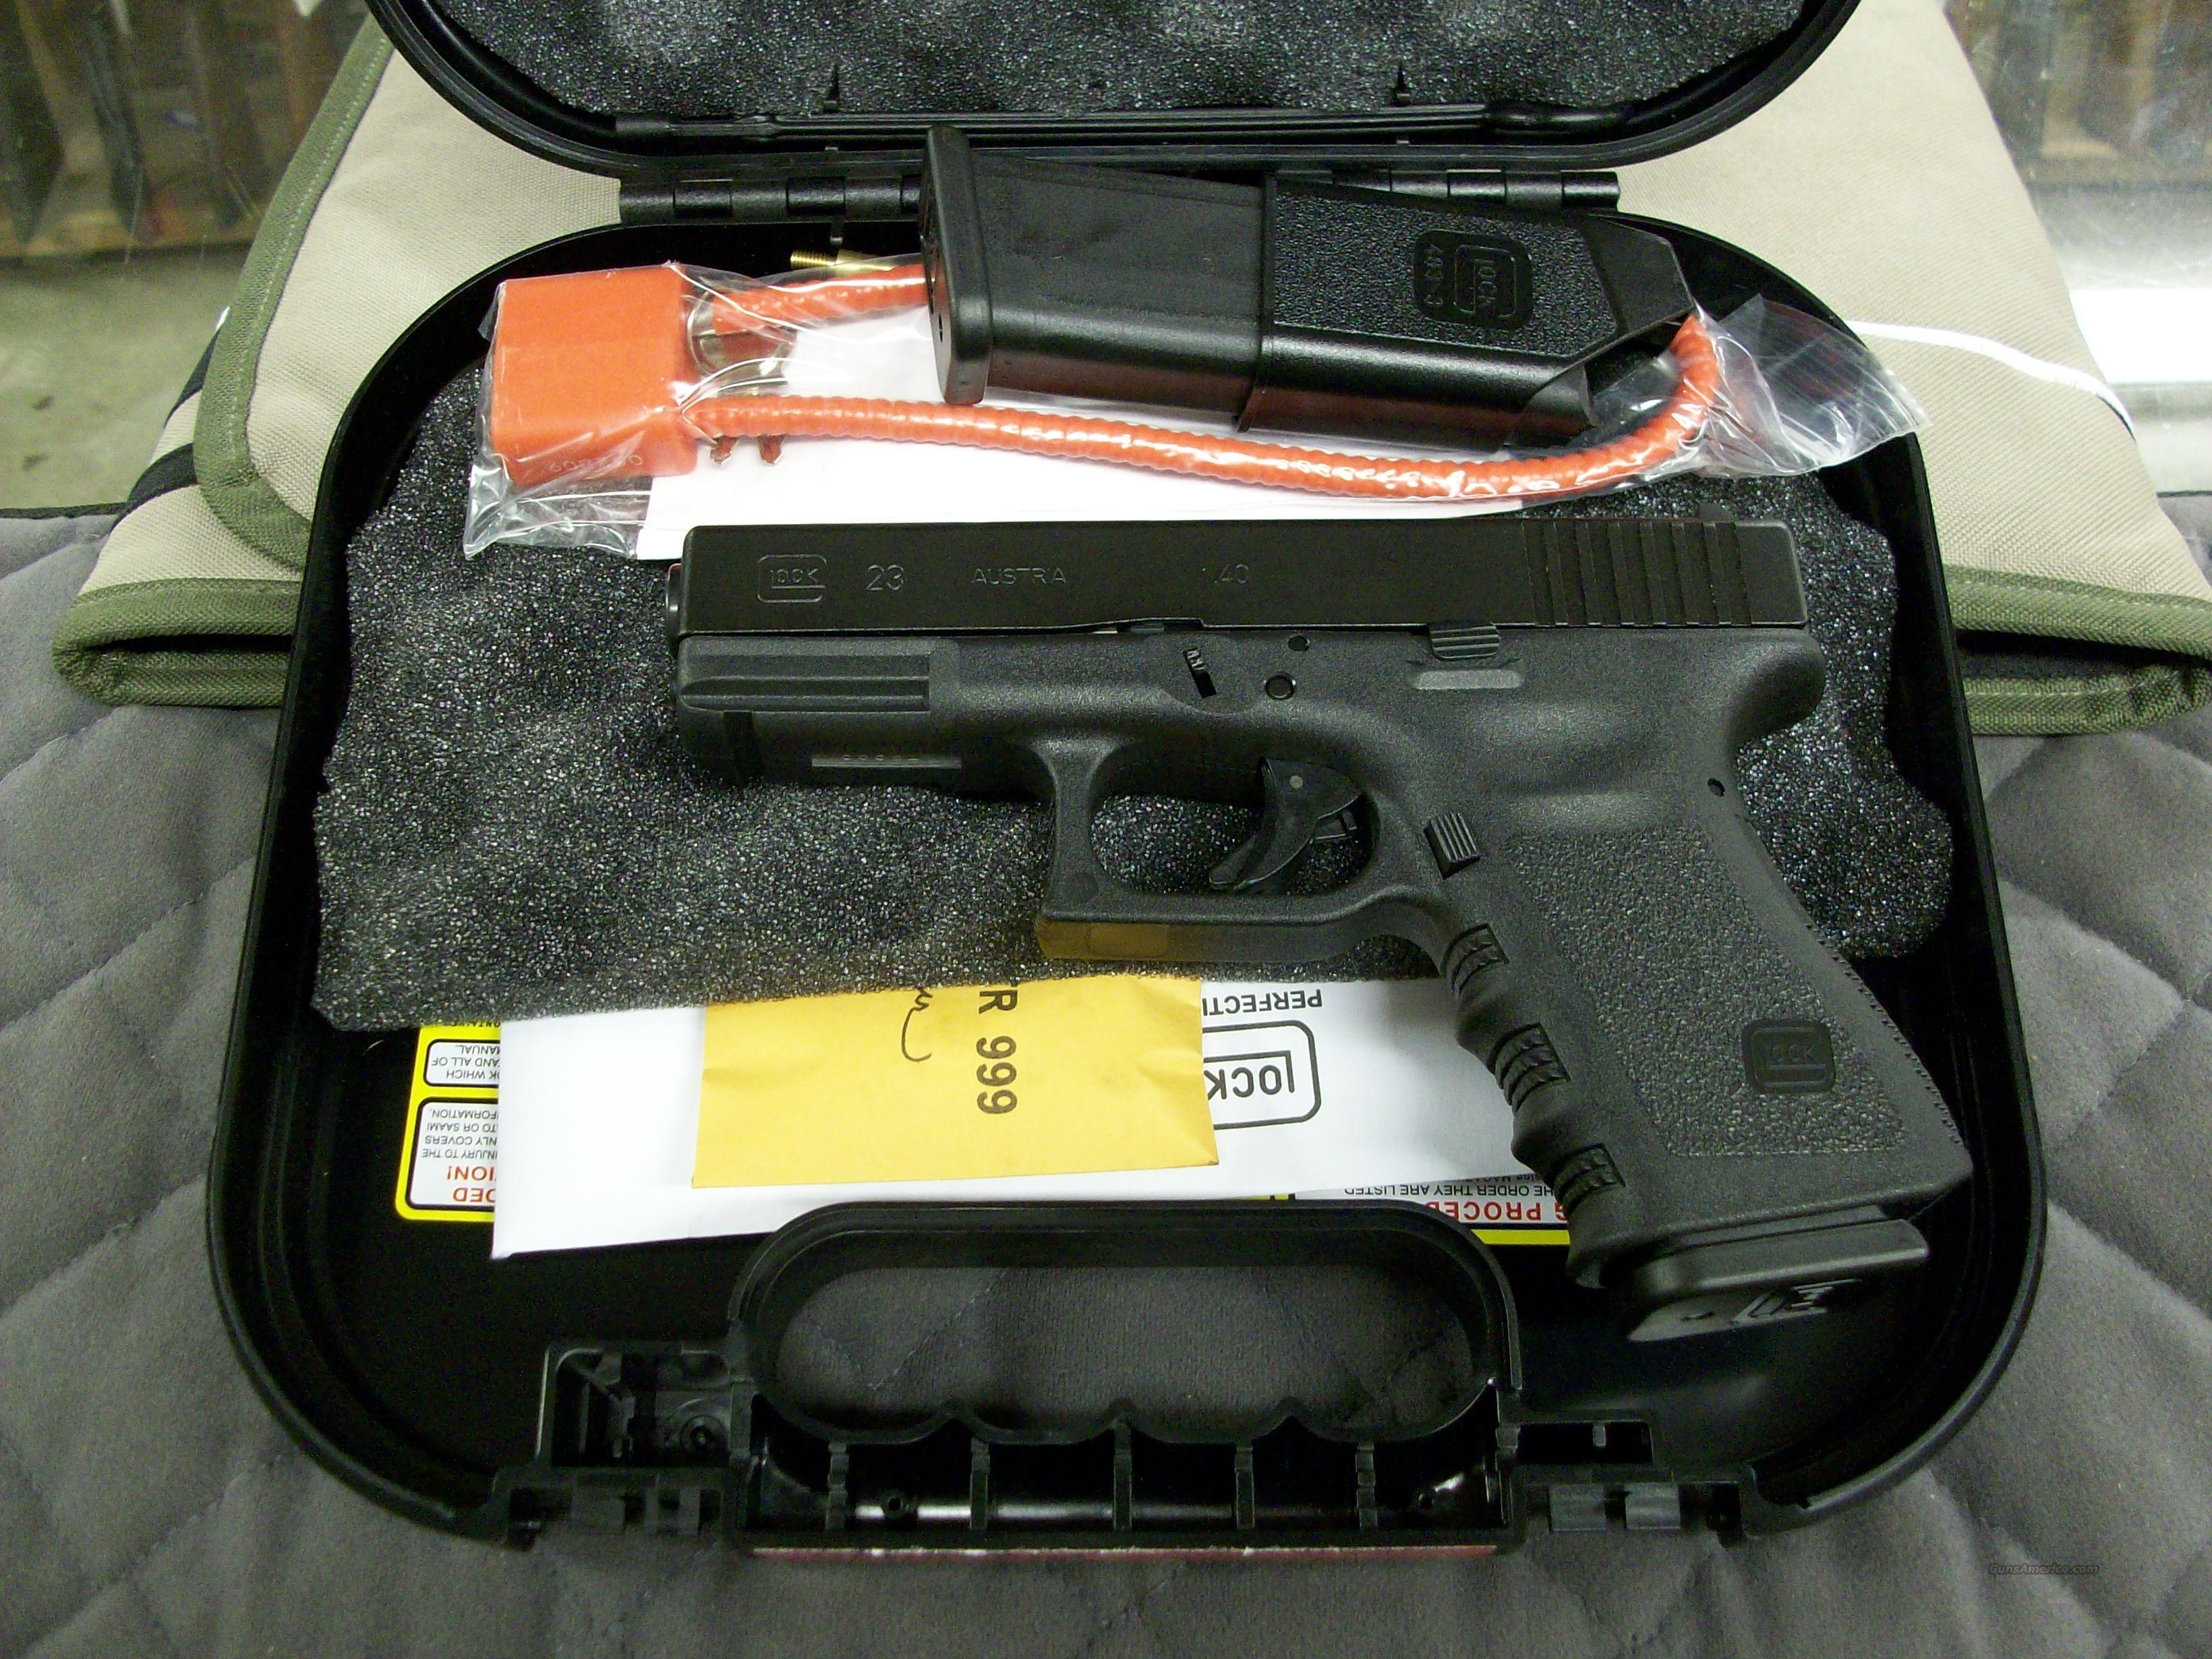 Glock 23 40 S&W Compact Made in USA  **NEW**  Guns > Pistols > Glock Pistols > 23